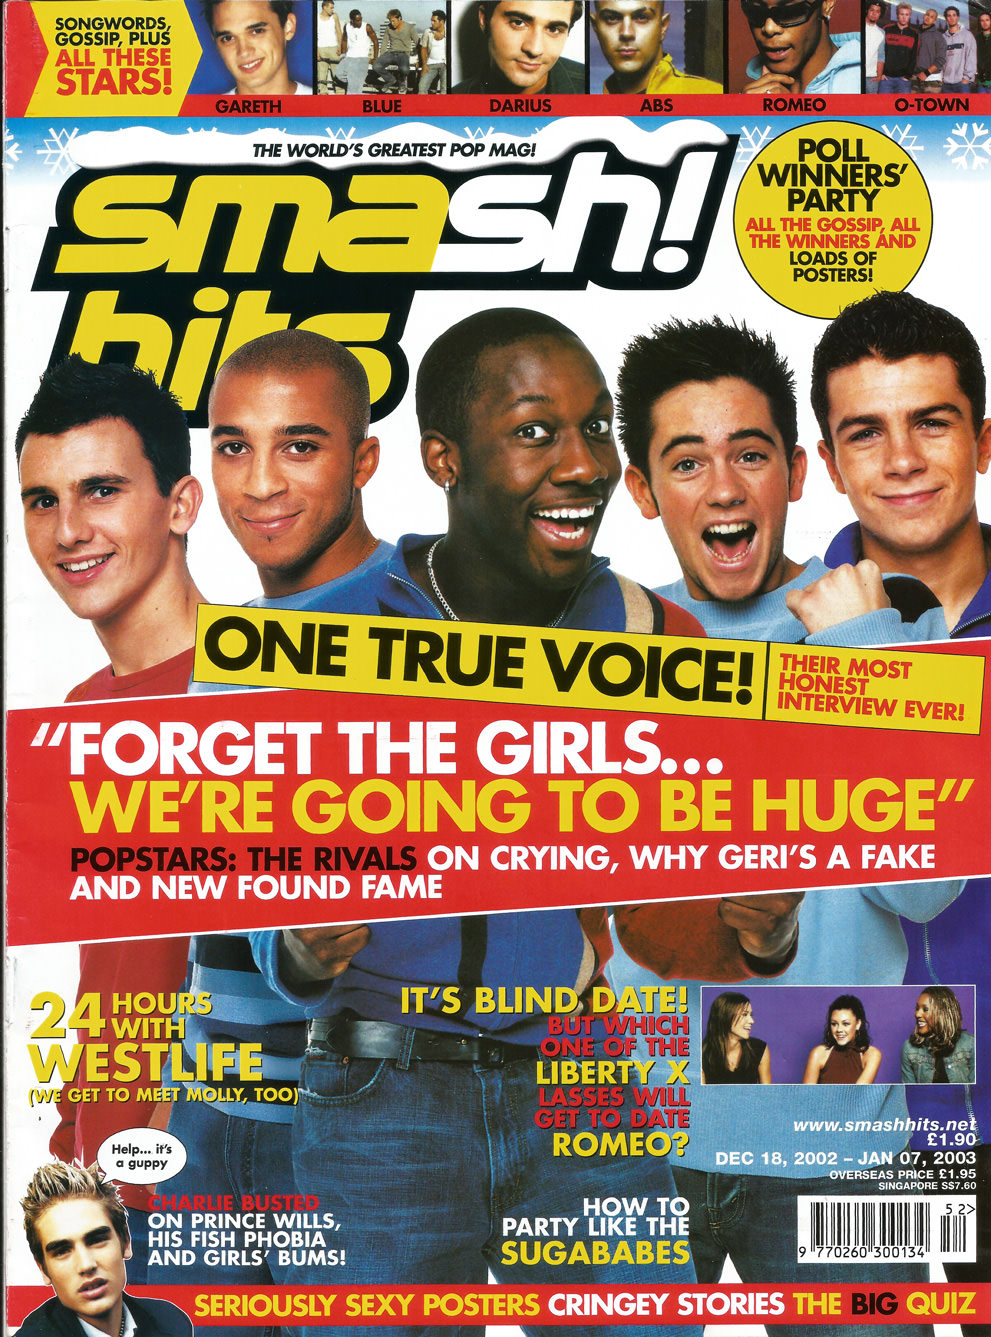 Image of One True Voice on the front cover of Smash Hits magazine